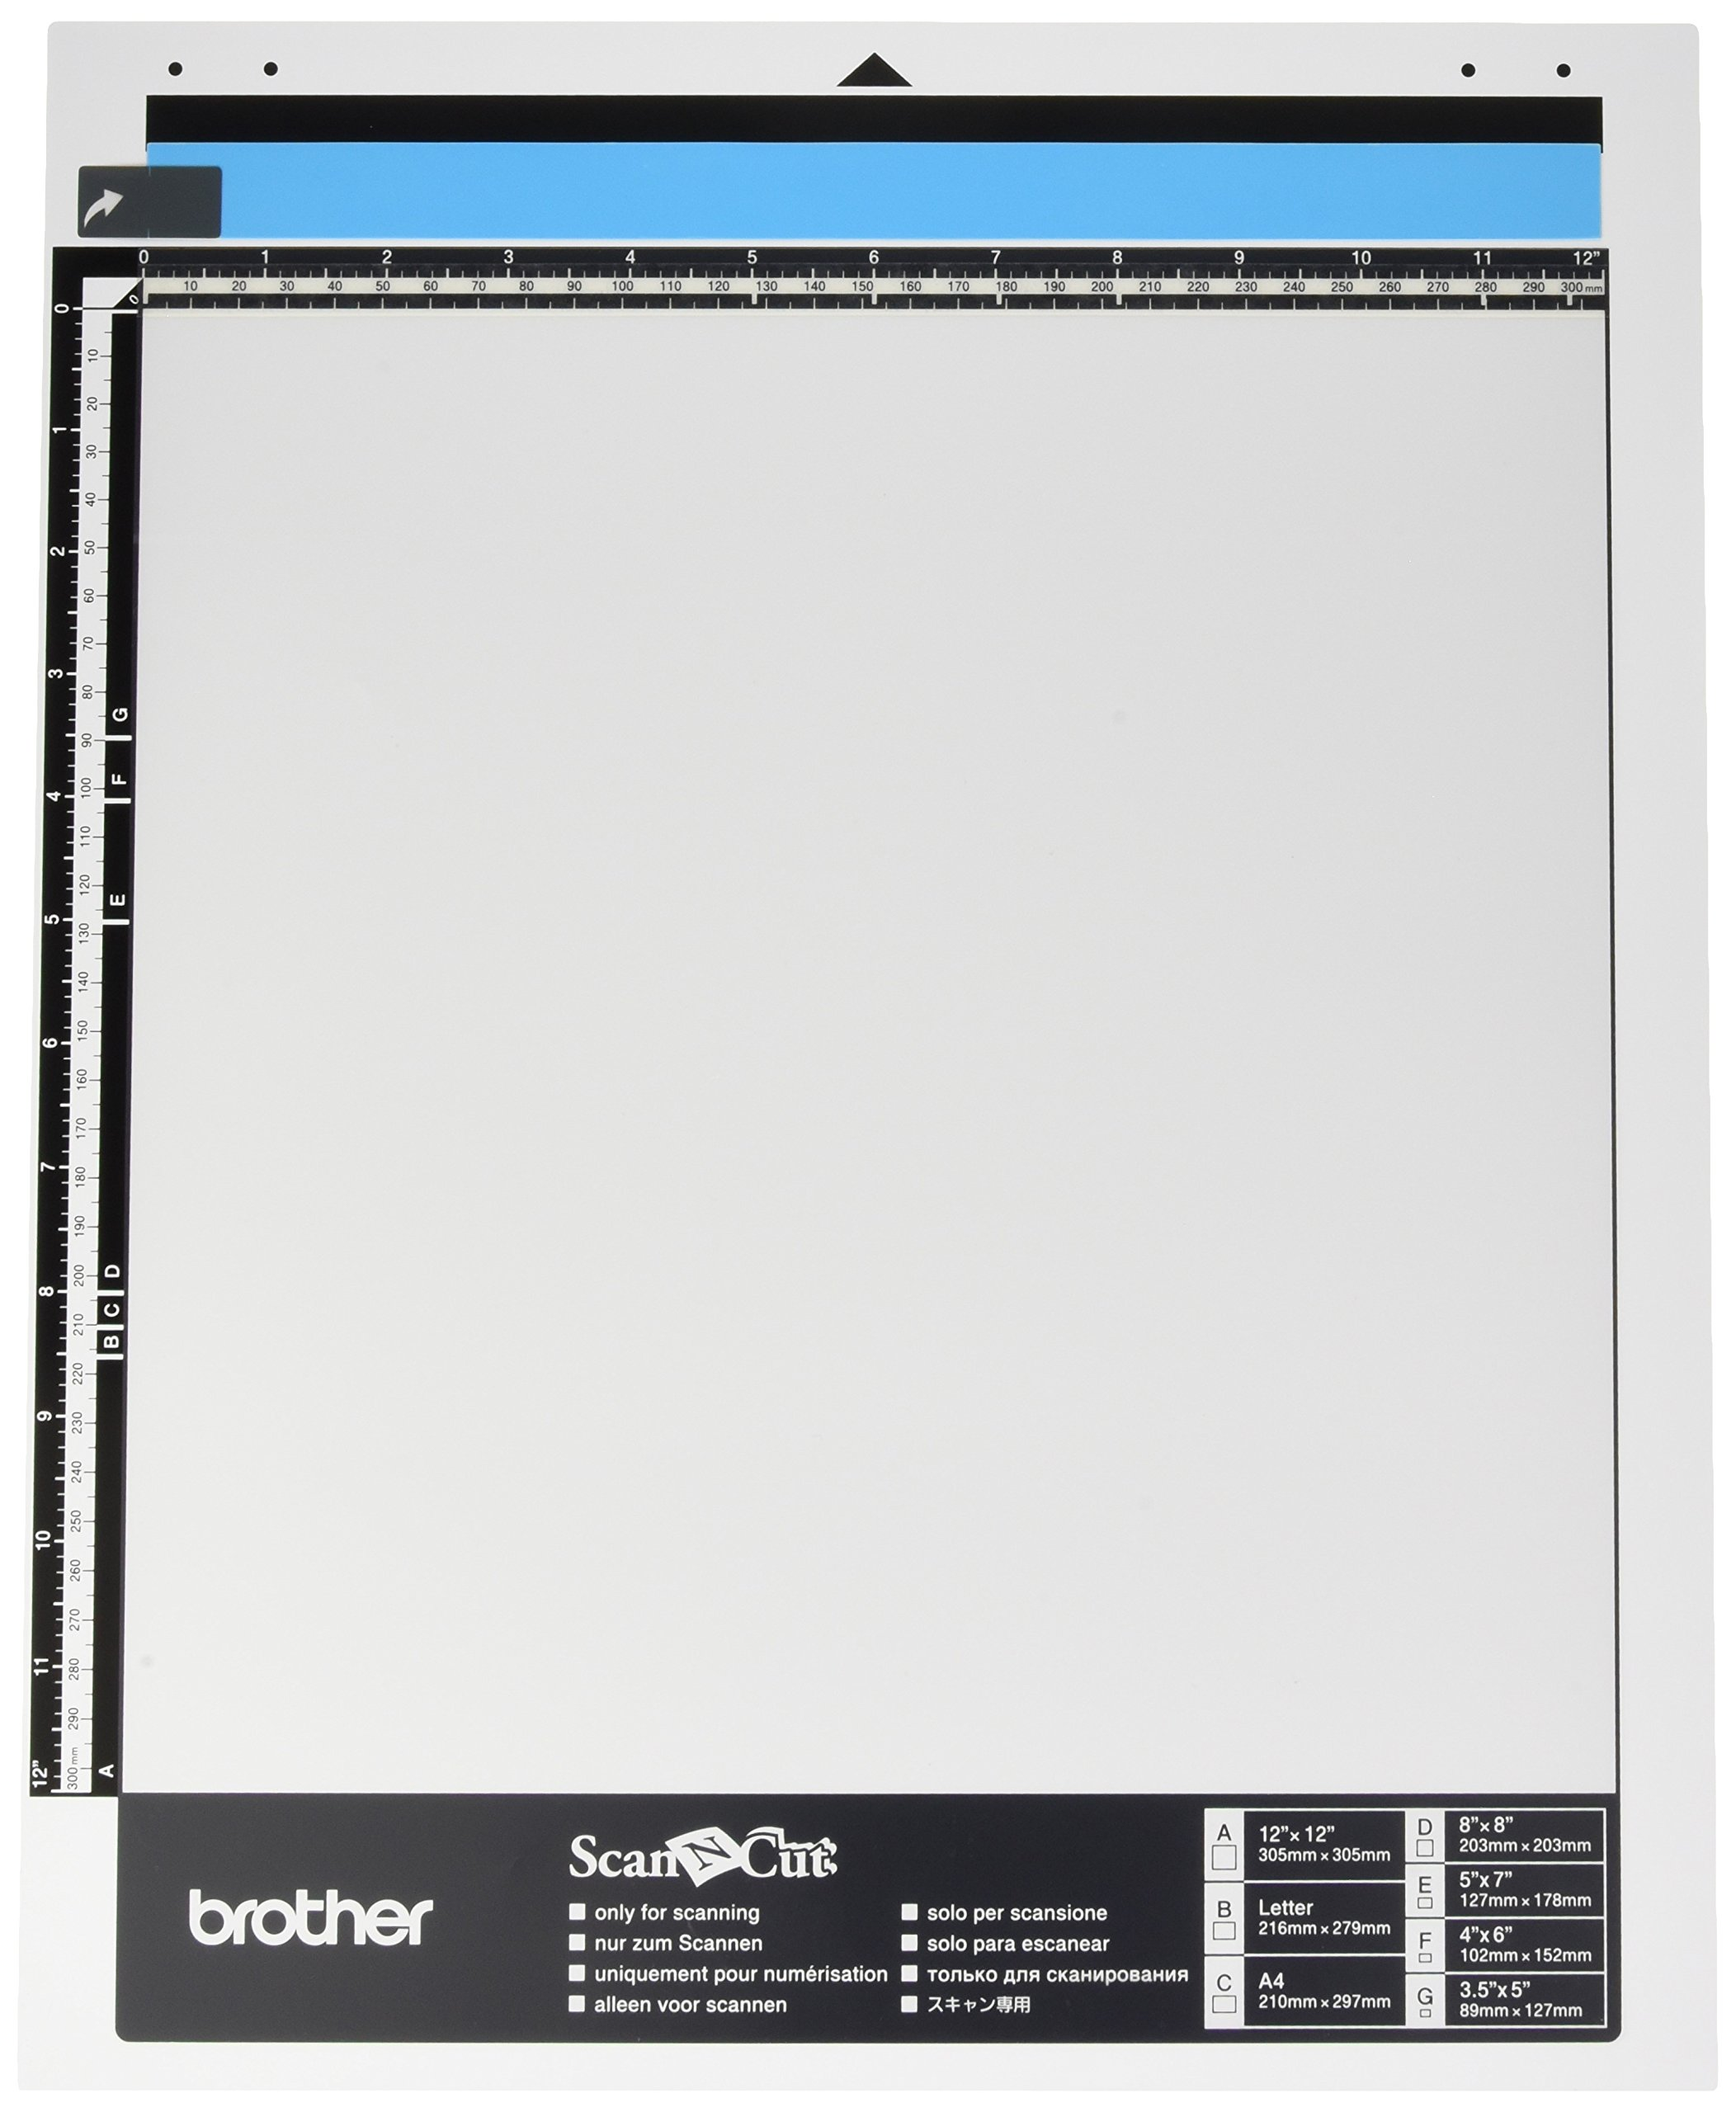 Brother CAMATS12 Photo Scanning Mat 12X12 by Brother Sewing